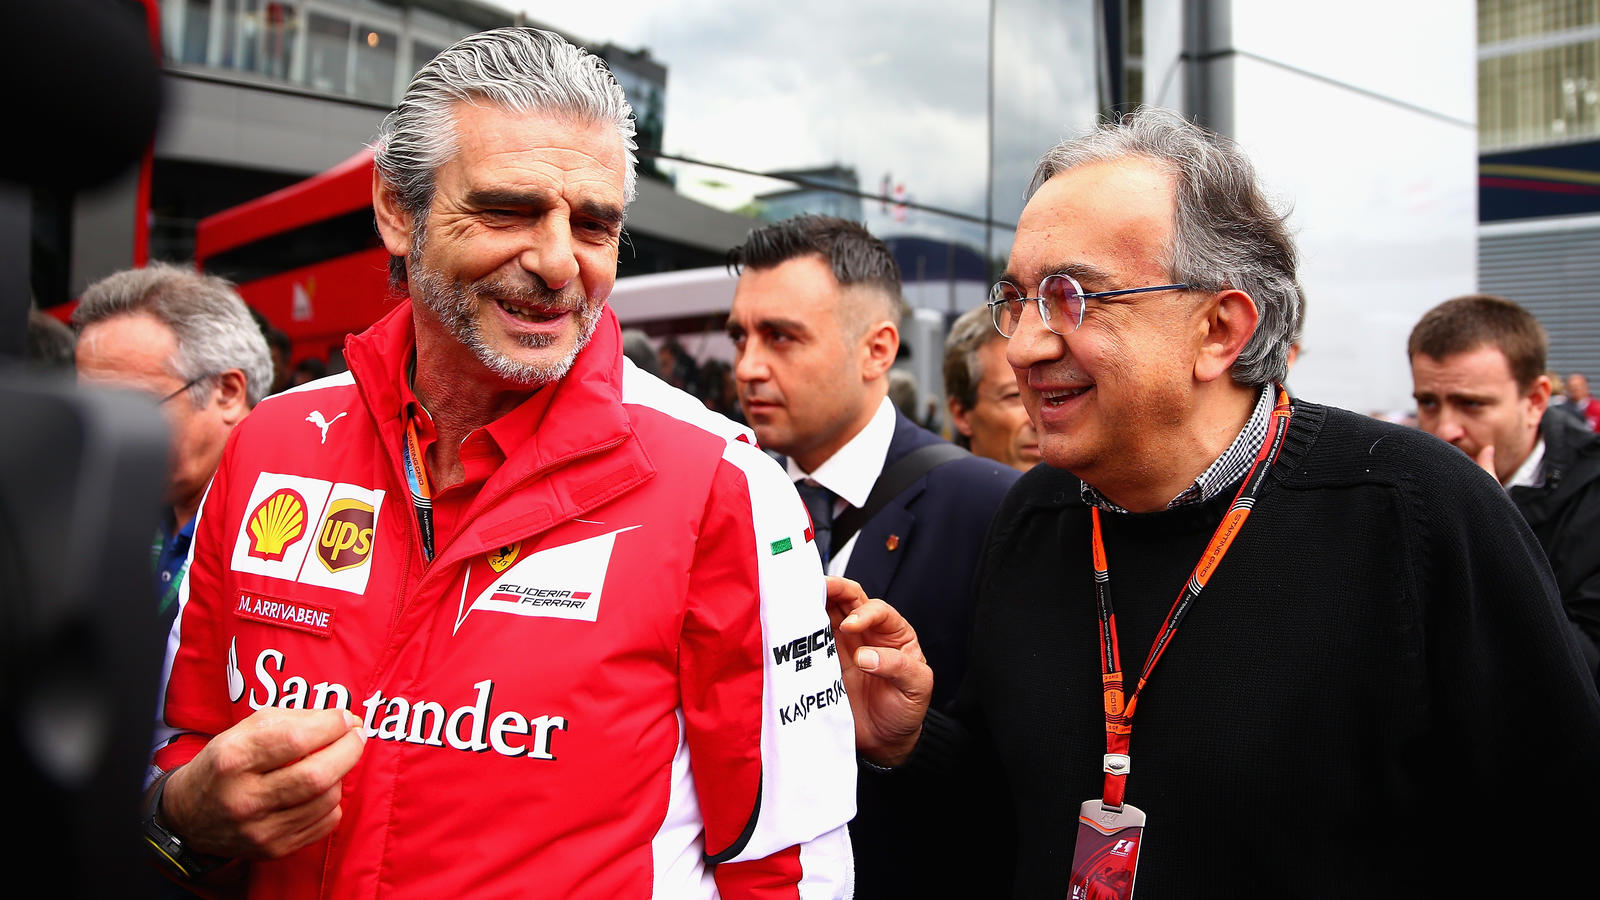 SPIELBERG, AUSTRIA - JUNE 21:  Ferrari Team Principal Maurizio Arrivabene speaks with Fiat CEO Sergio Marchionne in the paddock before the Formula One Grand Prix of Austria at Red Bull Ring on June 21, 2015 in Spielberg, Austria.  (Photo by Clive Mas